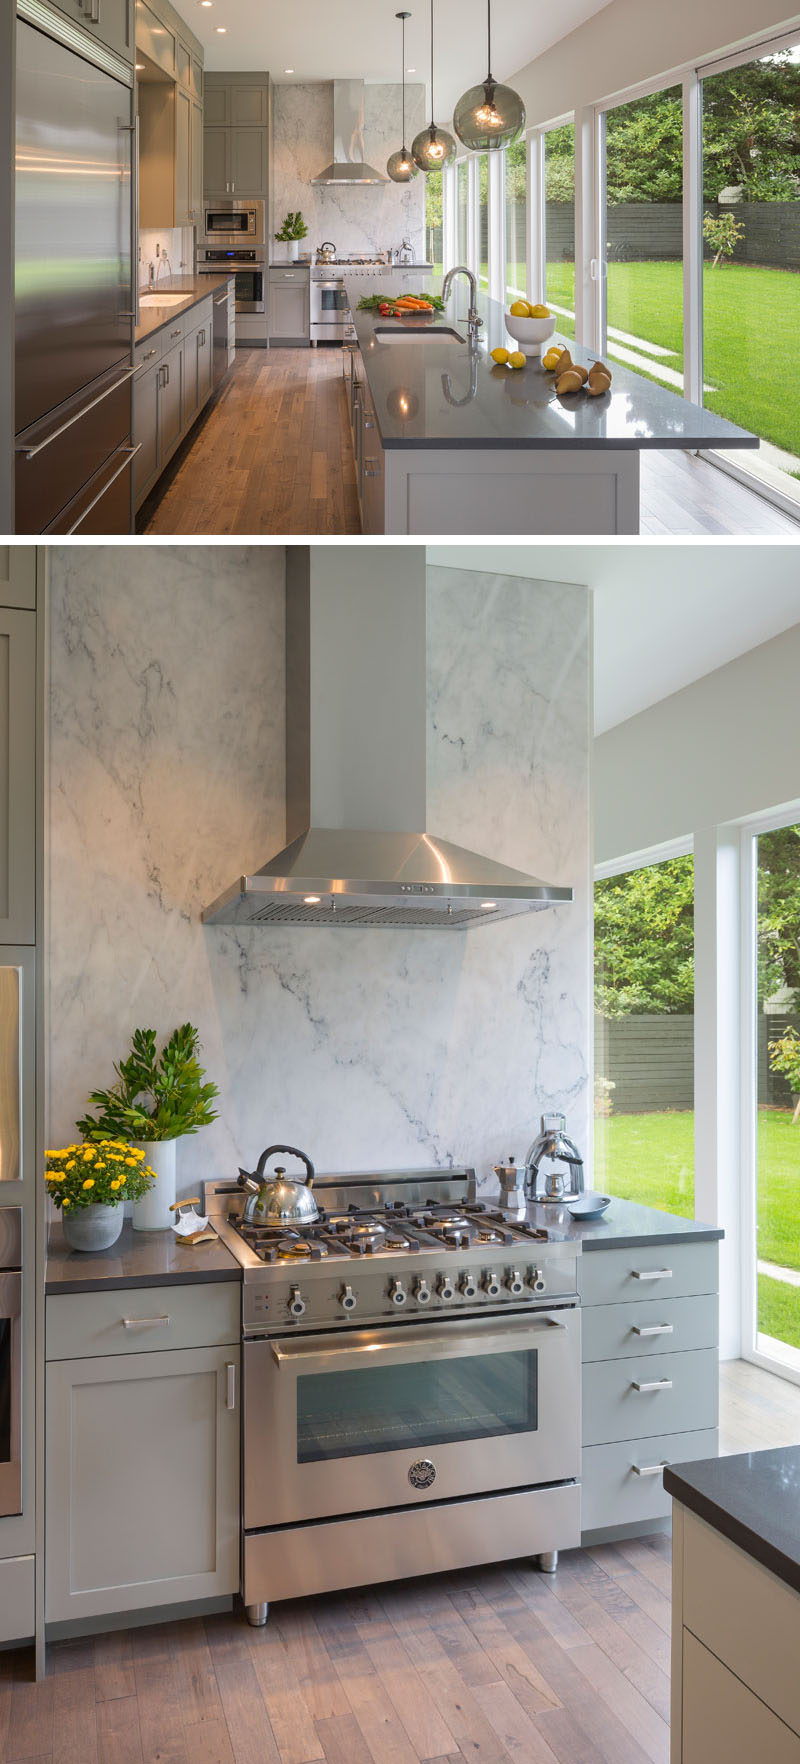 This contemporary kitchen features a large grey marble slab at the end of the kitchen is illuminated and becomes a backdrop that's visible from inside and out. A large kitchen island with a sink and plenty of storage, provides ample food prep space.